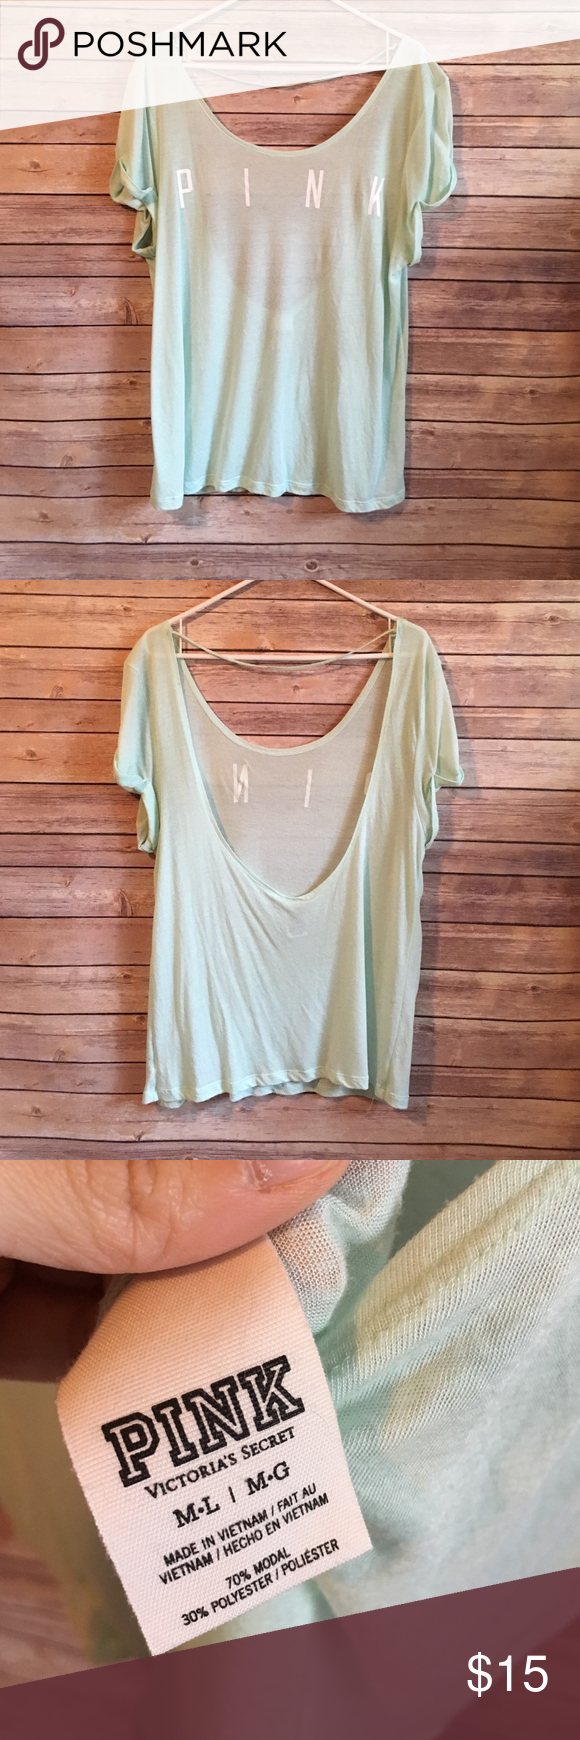 PINK Victoria's Secret Tee Light and flowy. Used at coverup and with a cute bralette under. GUC. Minor pilling from typical wear. PINK Victoria's Secret Tops Tees - Short Sleeve